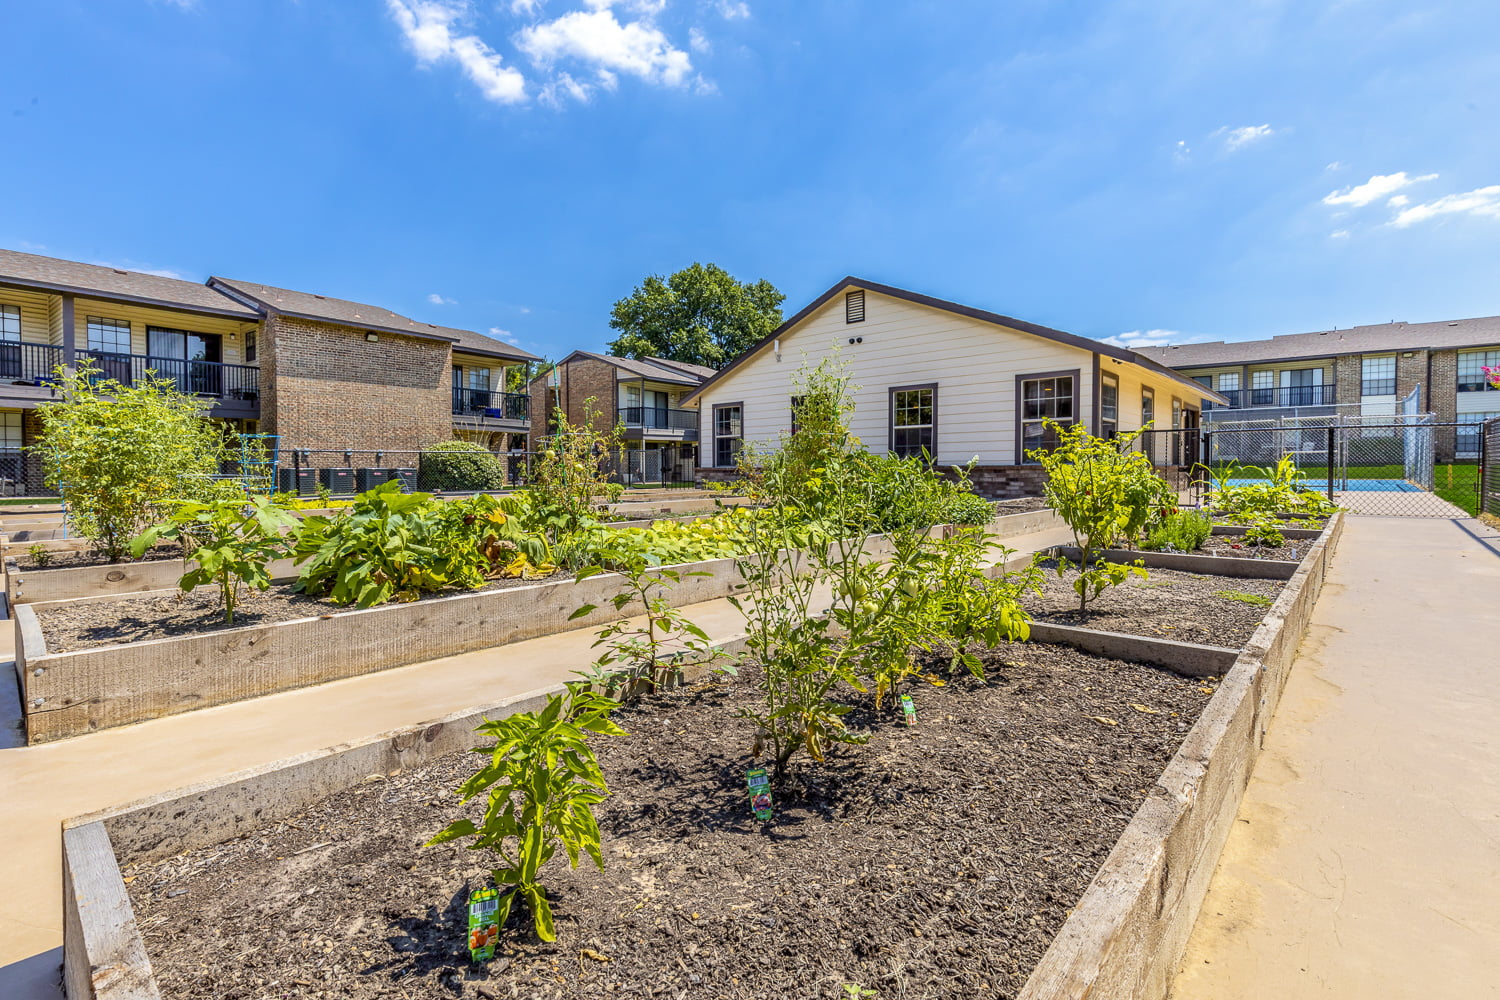 apartments with community gardens in dfw